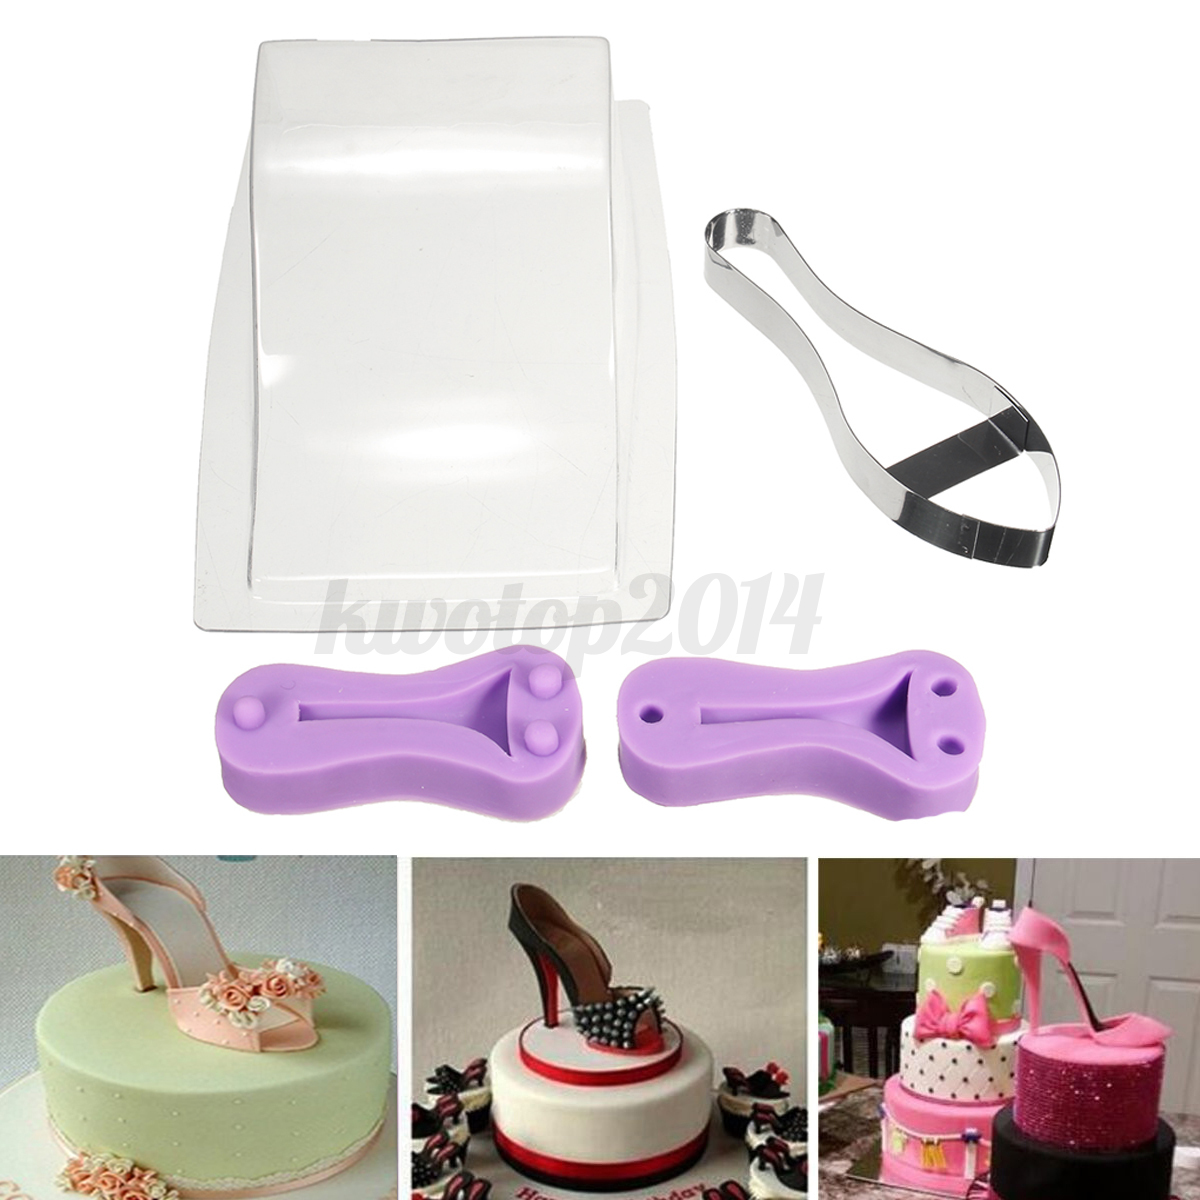 D Wedding Cake Chocolate Molds